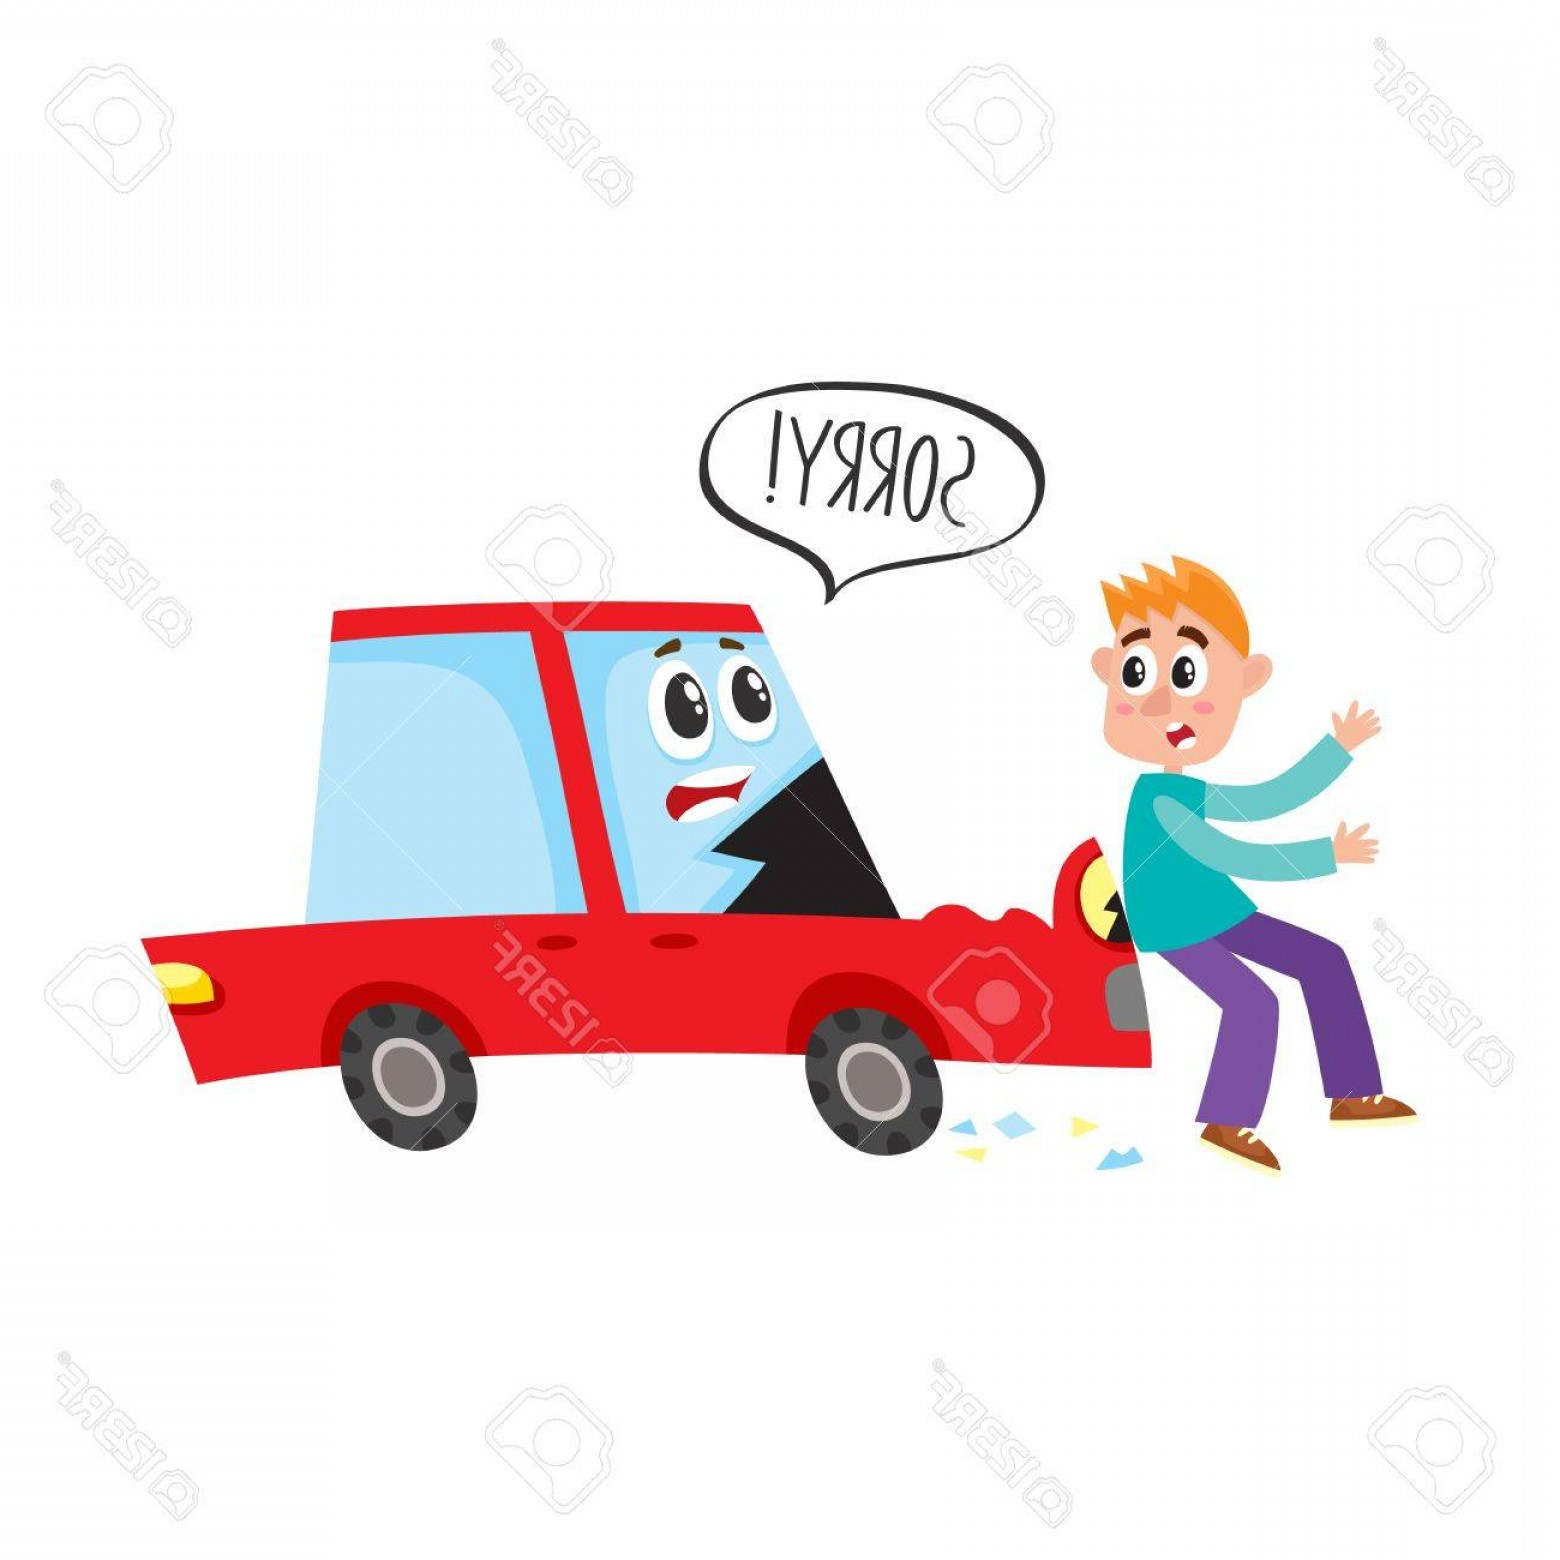 Face Side Pedestrian Vector: Photostock Vector Vector Flat Cartoon Pedestrian Accident Young Man Was Hit By Red Car Character Saying Sorry Hood Den